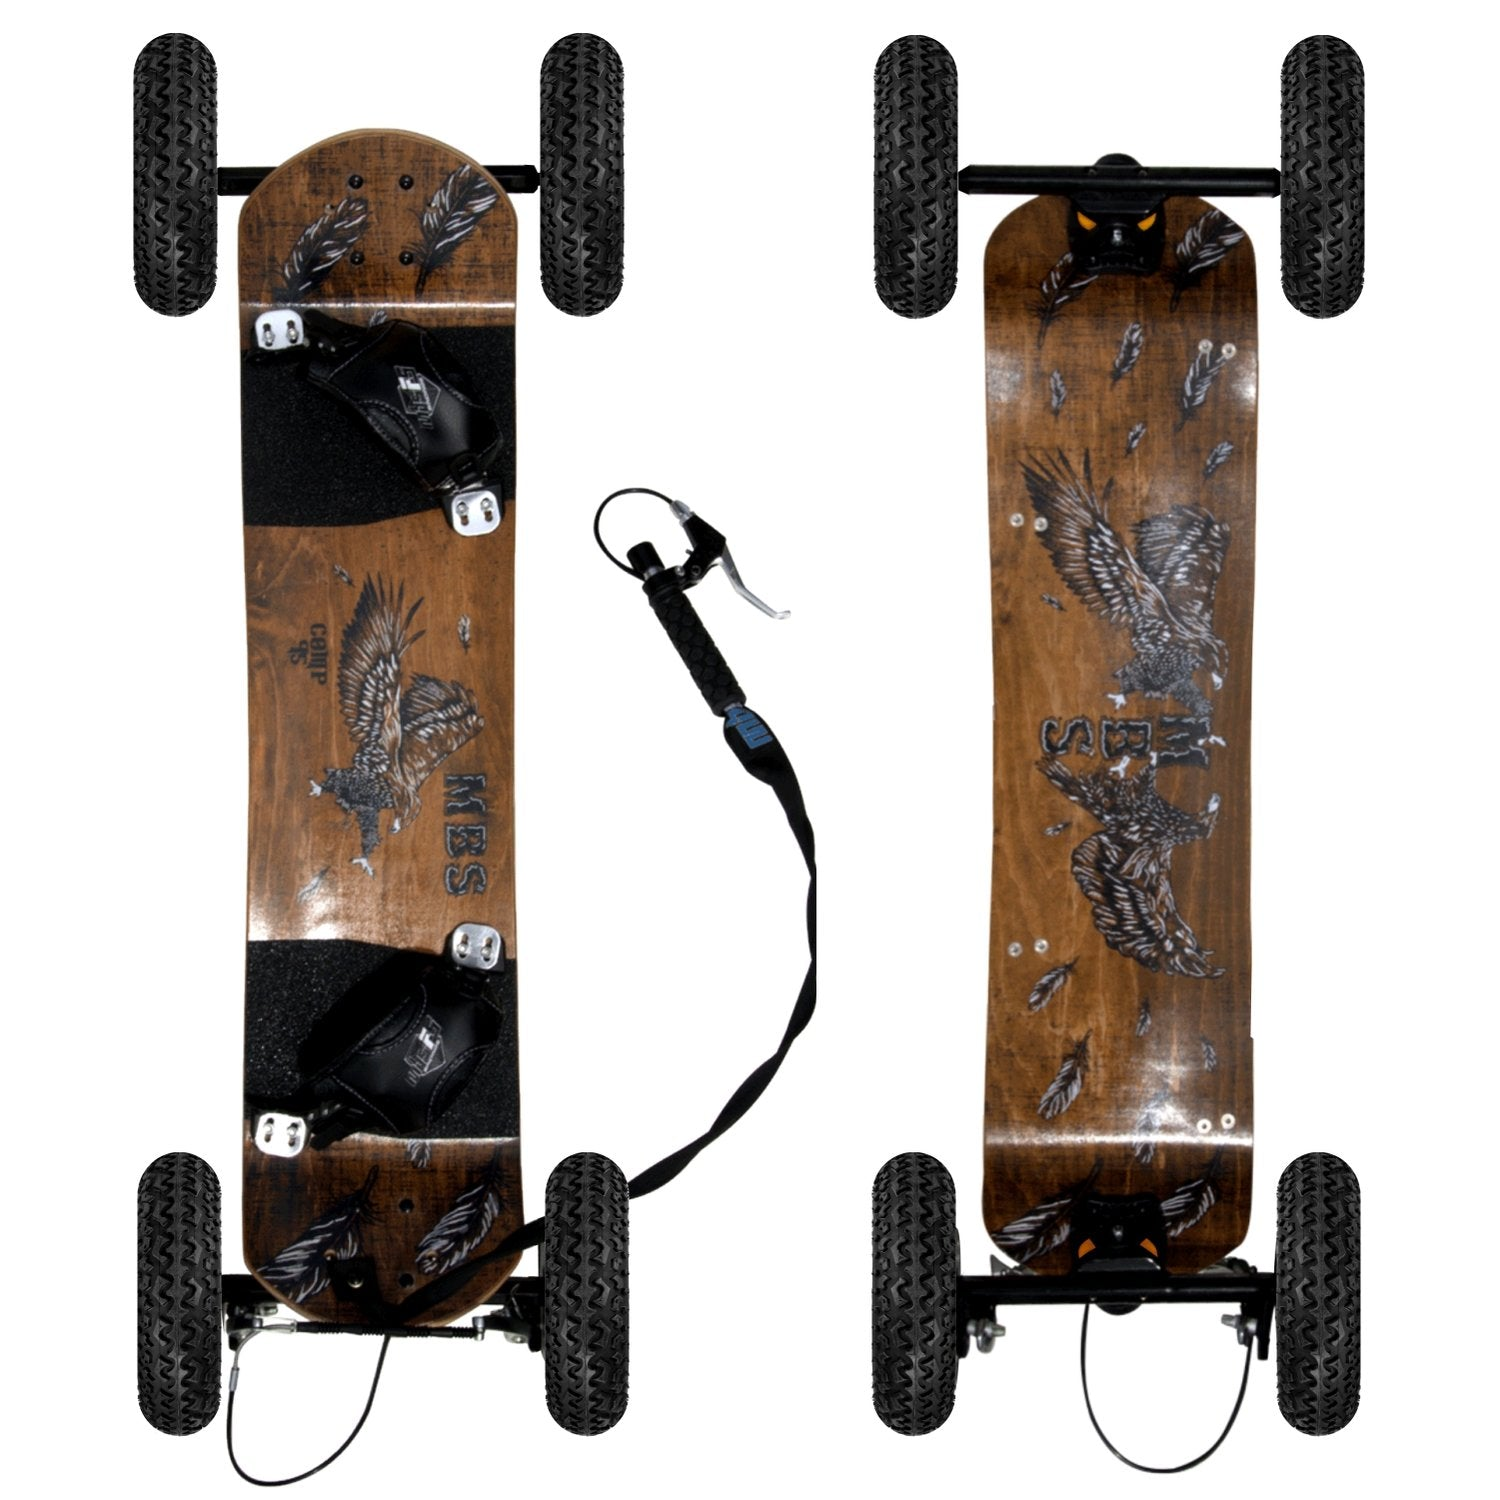 MBS Comp 95X Mountainboard - Birds - Mountainboard Ridetique.com